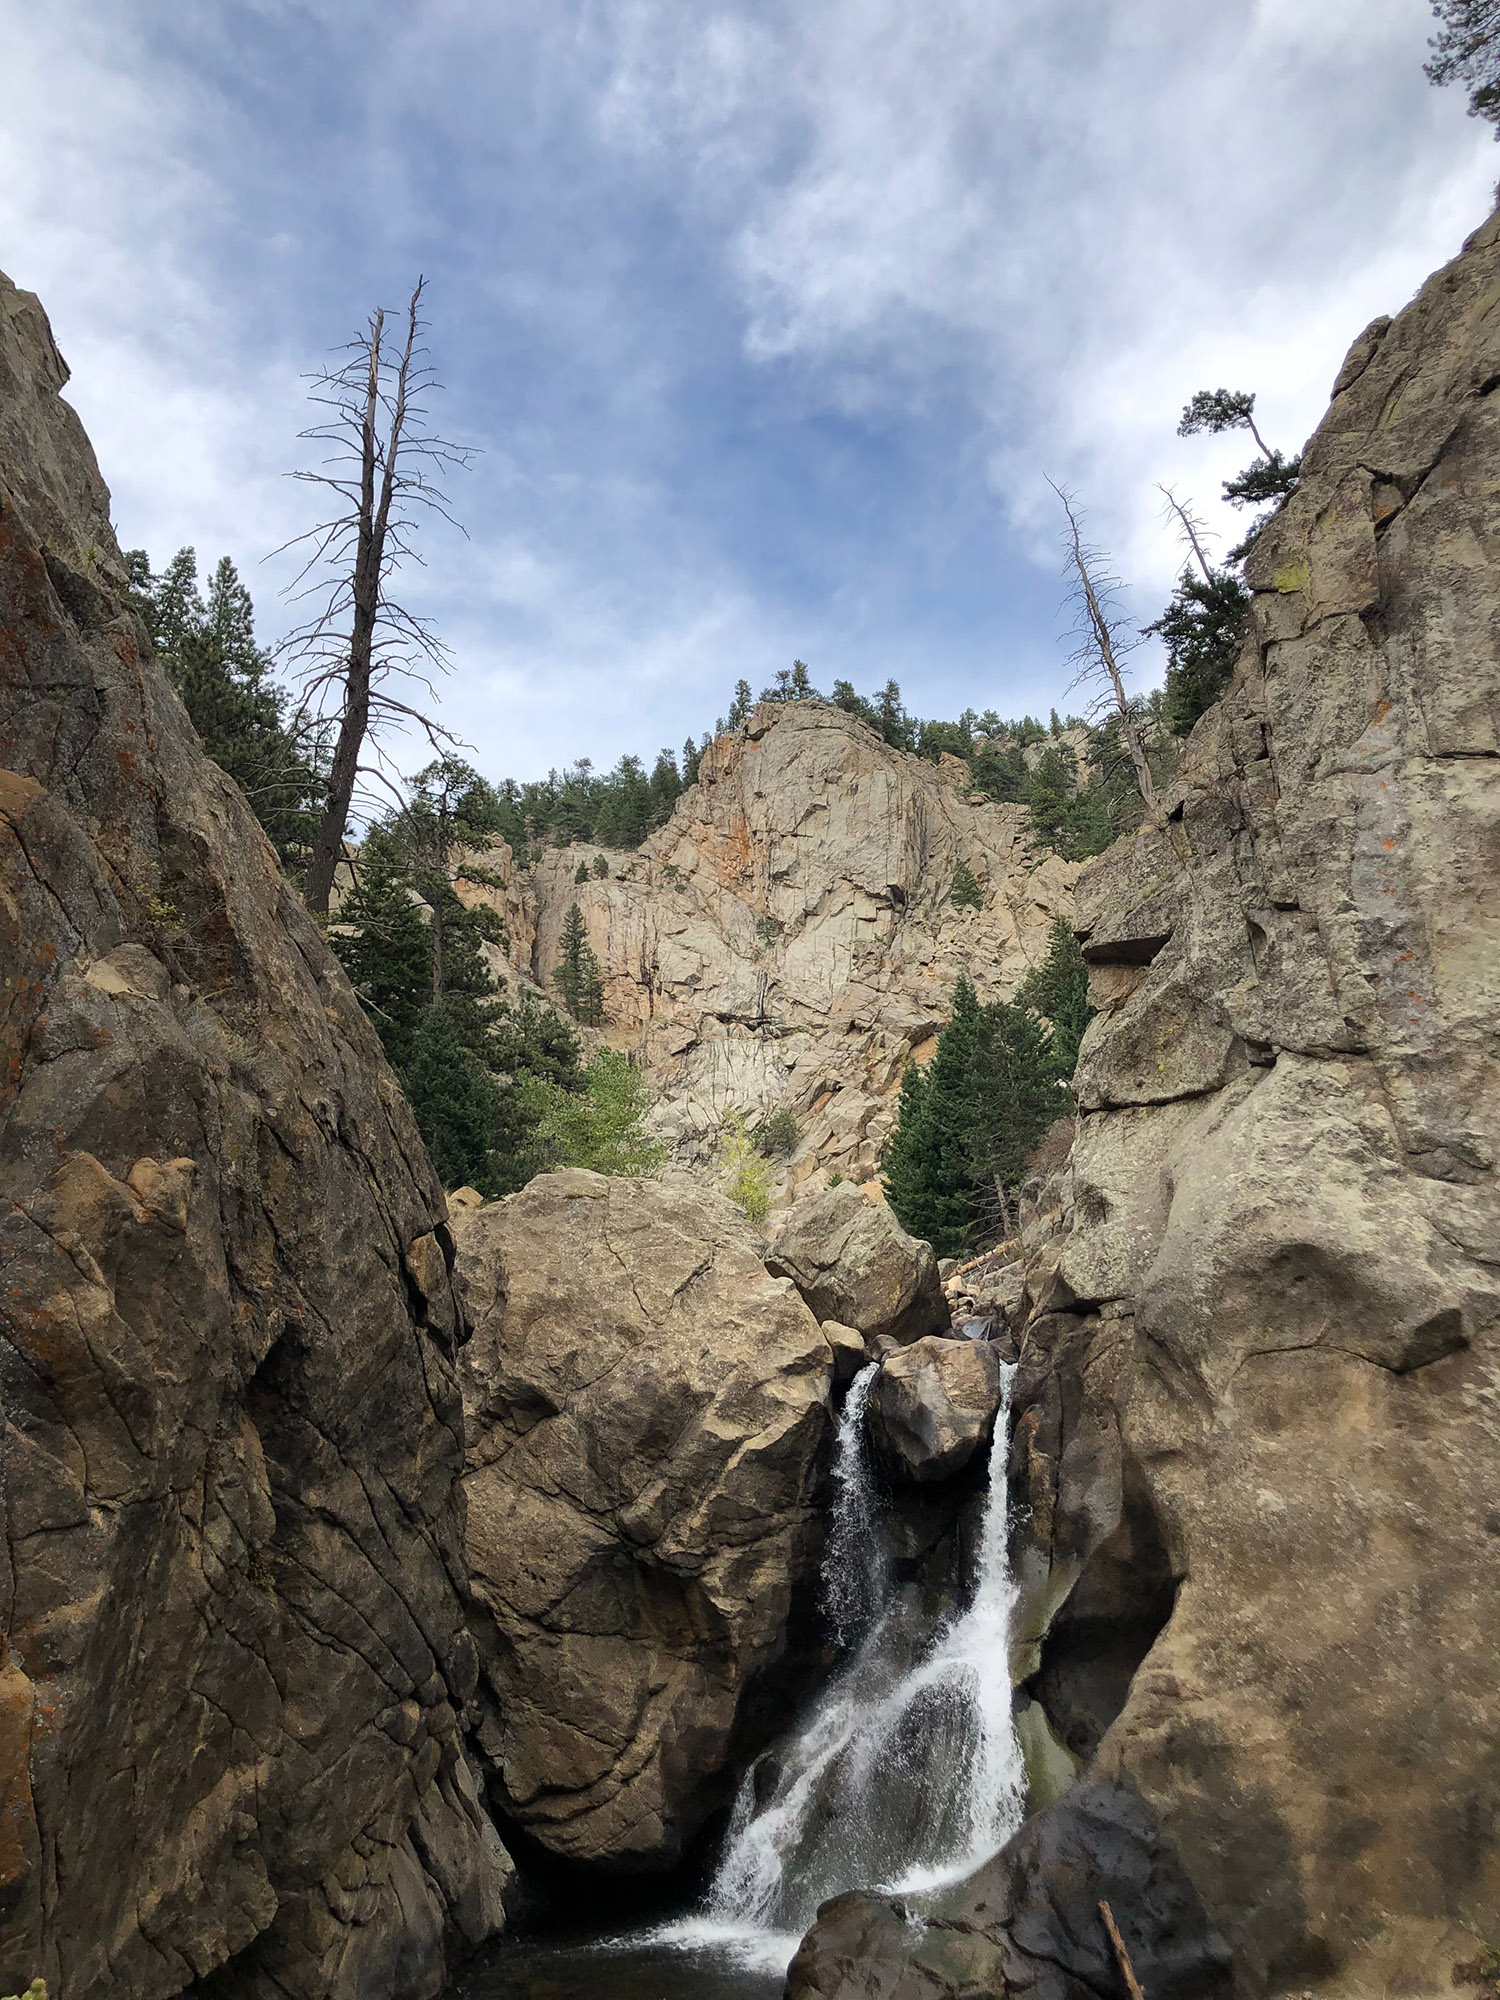 Since our big hike was cut short, we had a bit of extra time and decided check out Boulder Falls, a quick walk just off the main road in between Nederland and Boulder.